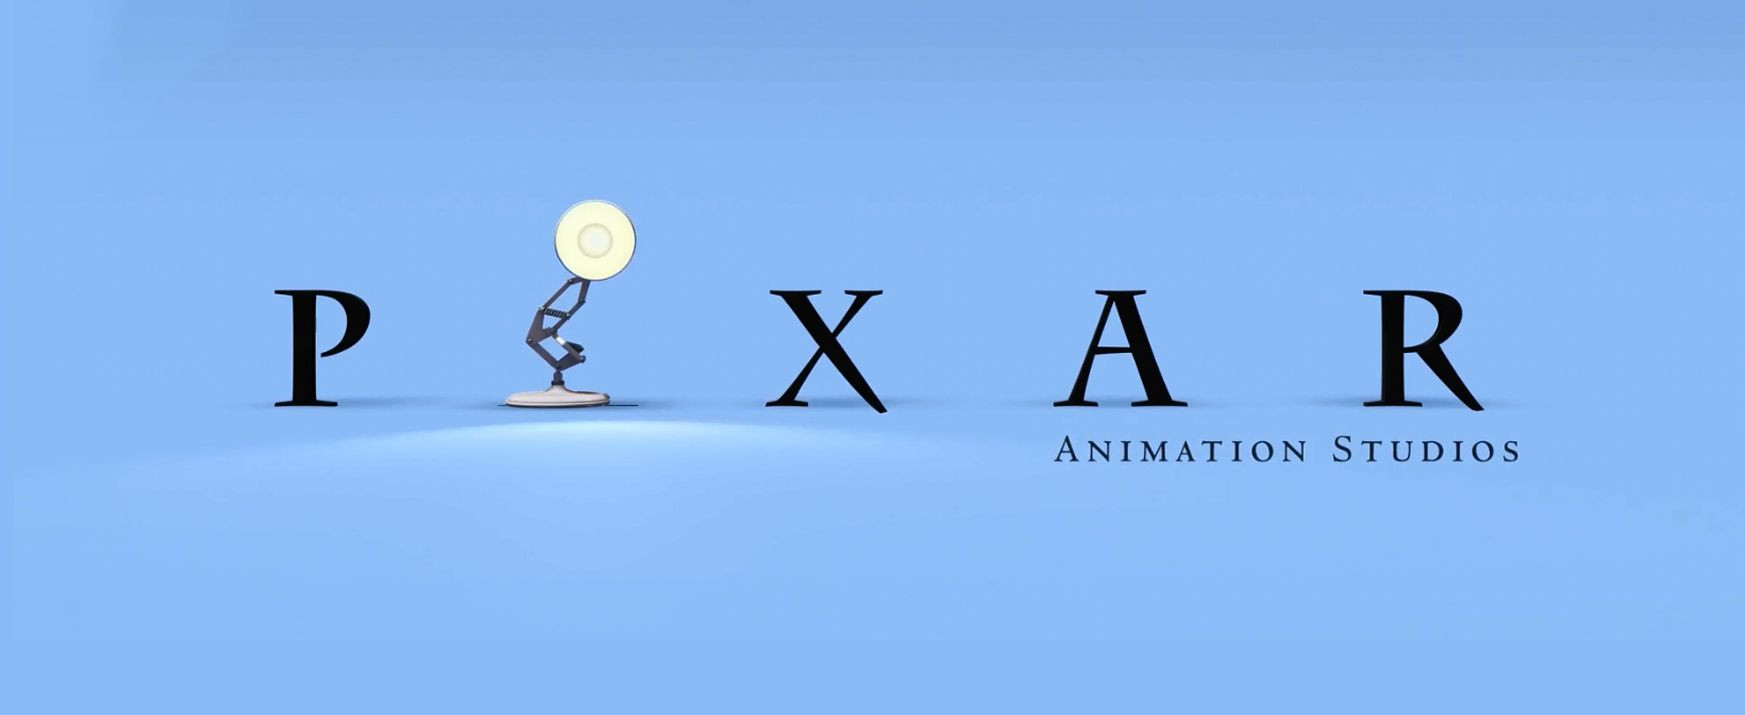 Pixar Is A Film Studio Known For Their Amazing Cgi Animations From Toy Story 1995 To Monsters University 2013 Animation Studio Pixar Films Pixar Movies